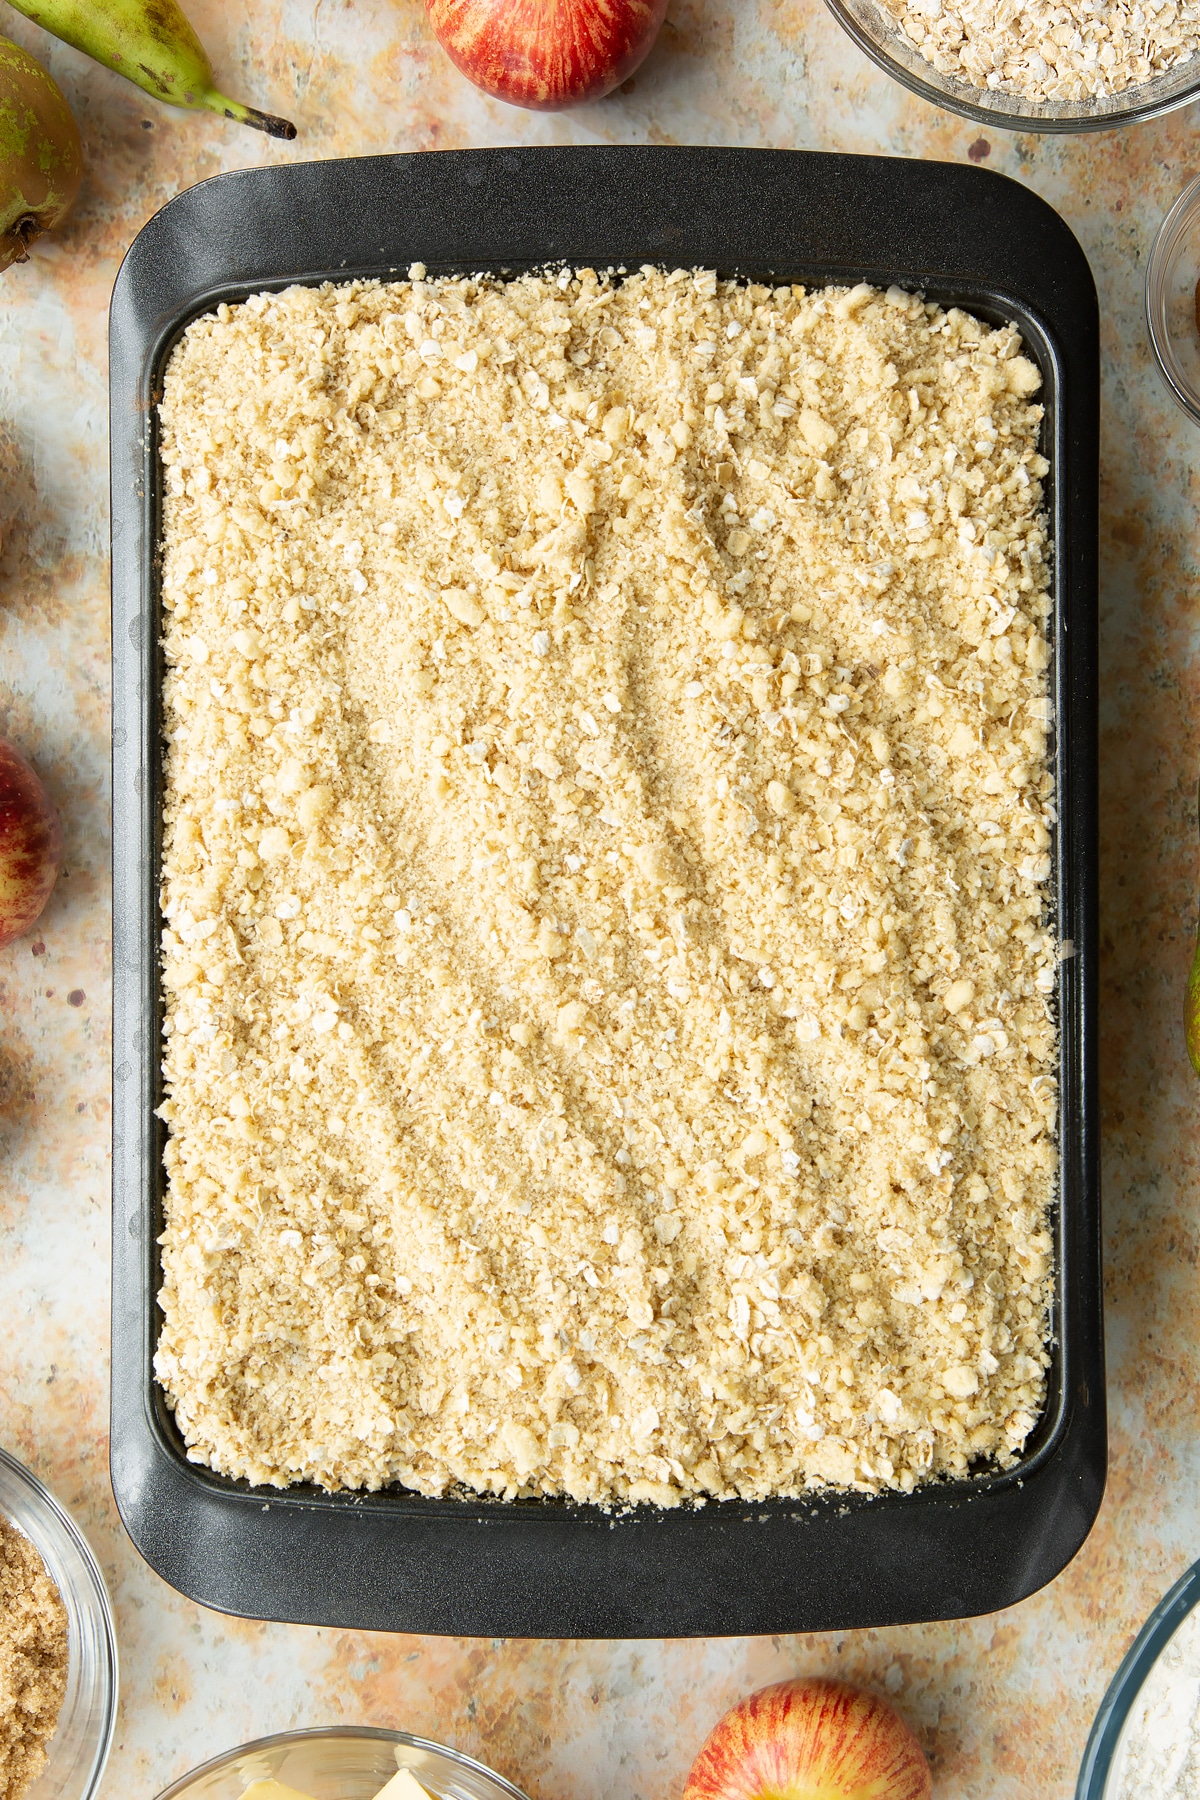 Oat crumble on top of apples and pears in a metal tray.